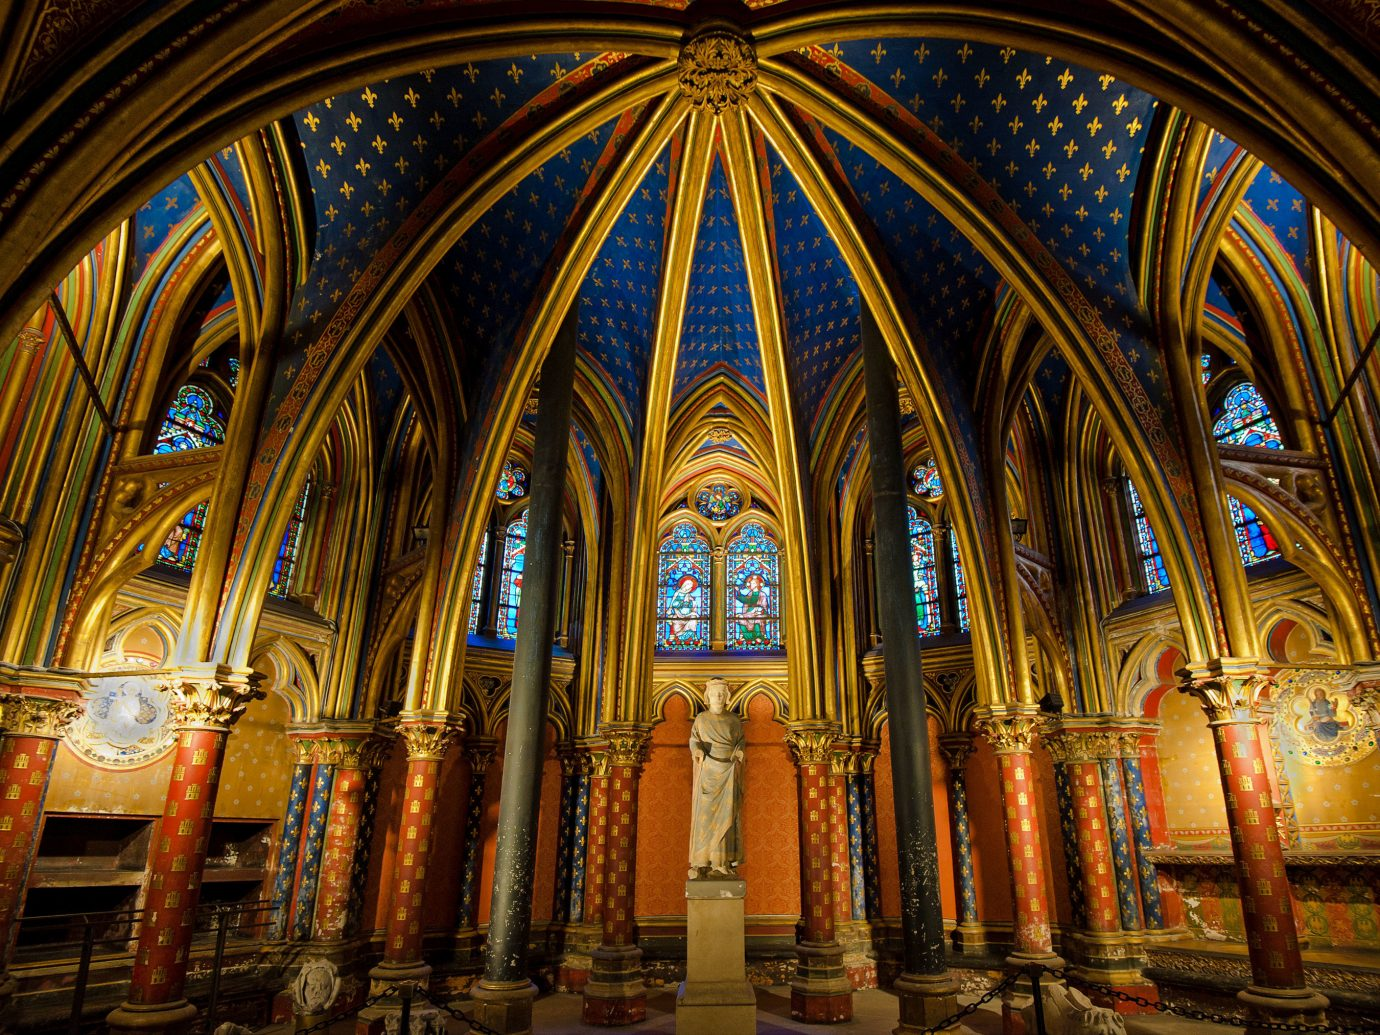 Romance Trip Ideas indoor stained glass chapel building cathedral place of worship landmark basilica column arch Church gothic architecture medieval architecture symmetry religious institute byzantine architecture vault window altar glass religion historic site crypt material worship shrine abbey ceiling several